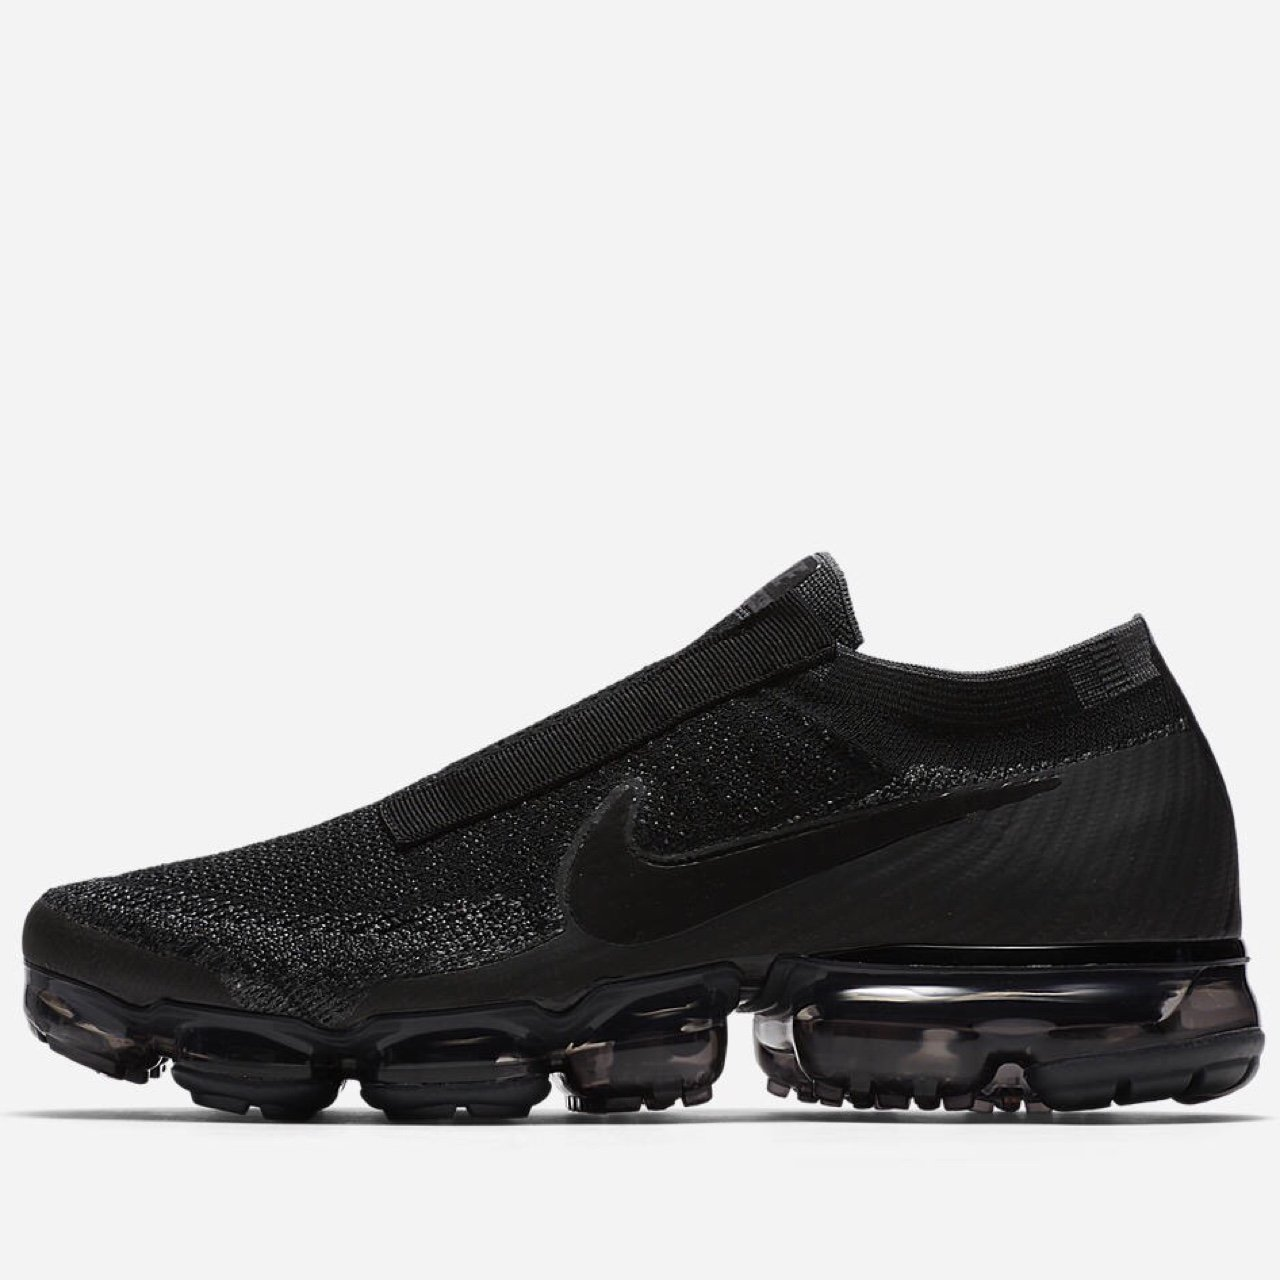 62fd57811be274 RESERVED BY DEPOSIT  Nike Air Vapormax SE laceless